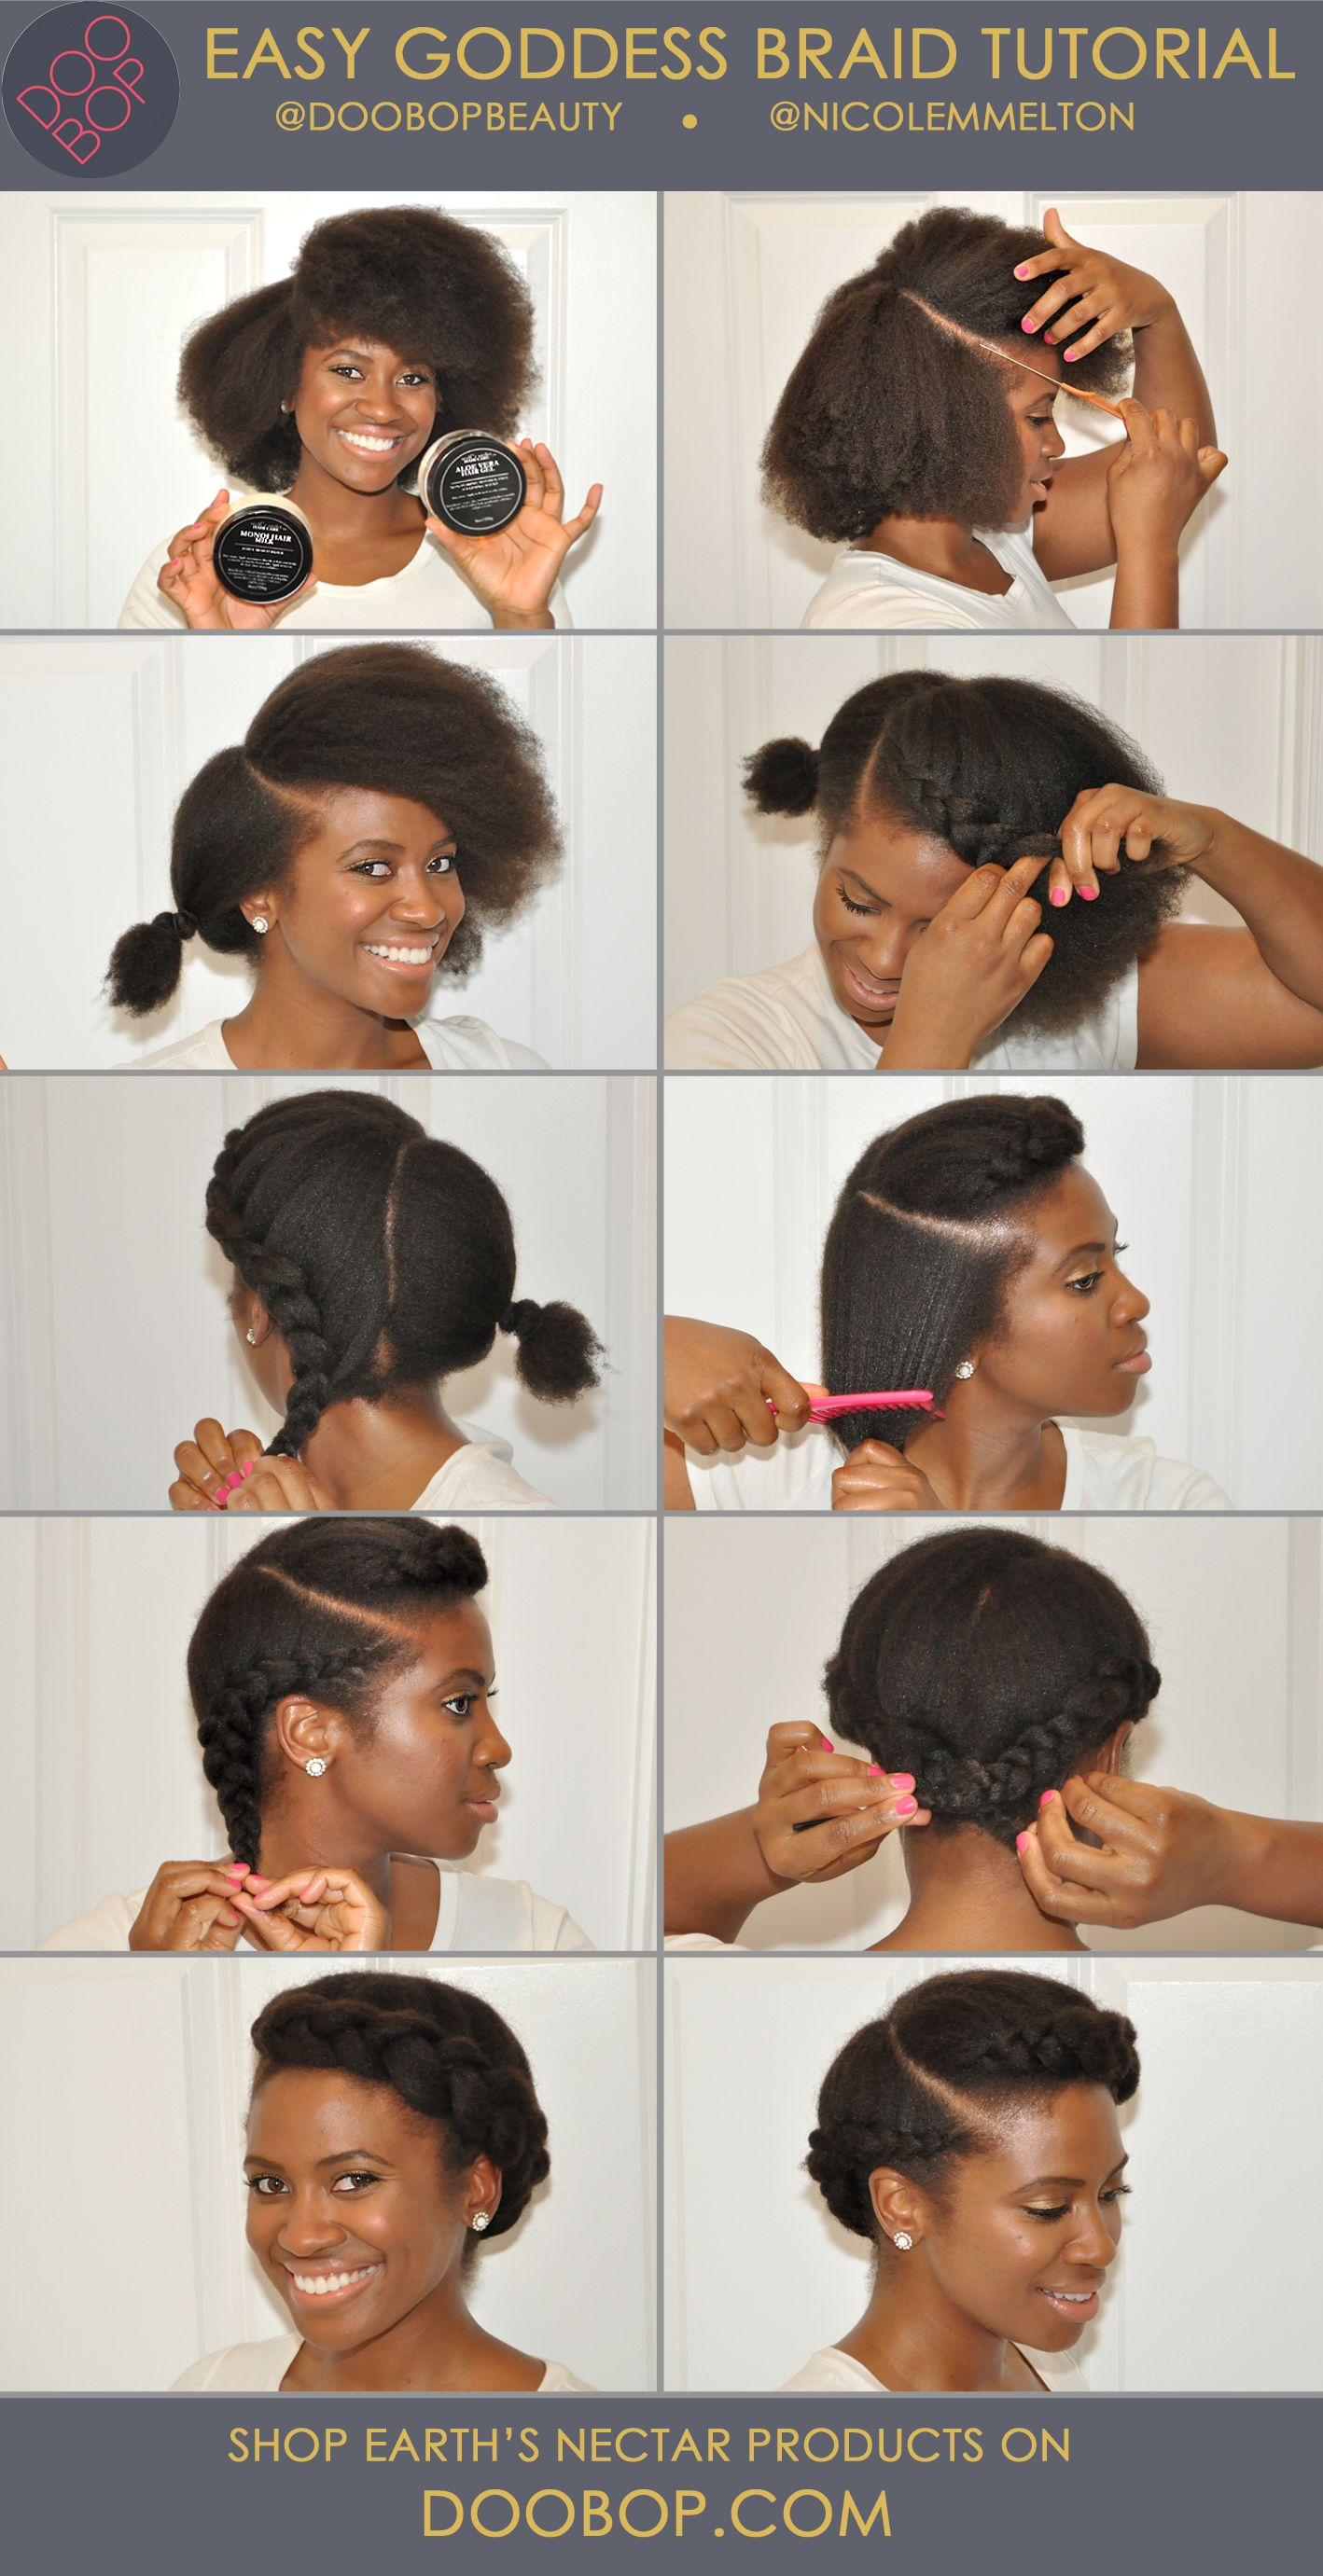 learn how to style a simple yet chic goddess braid on